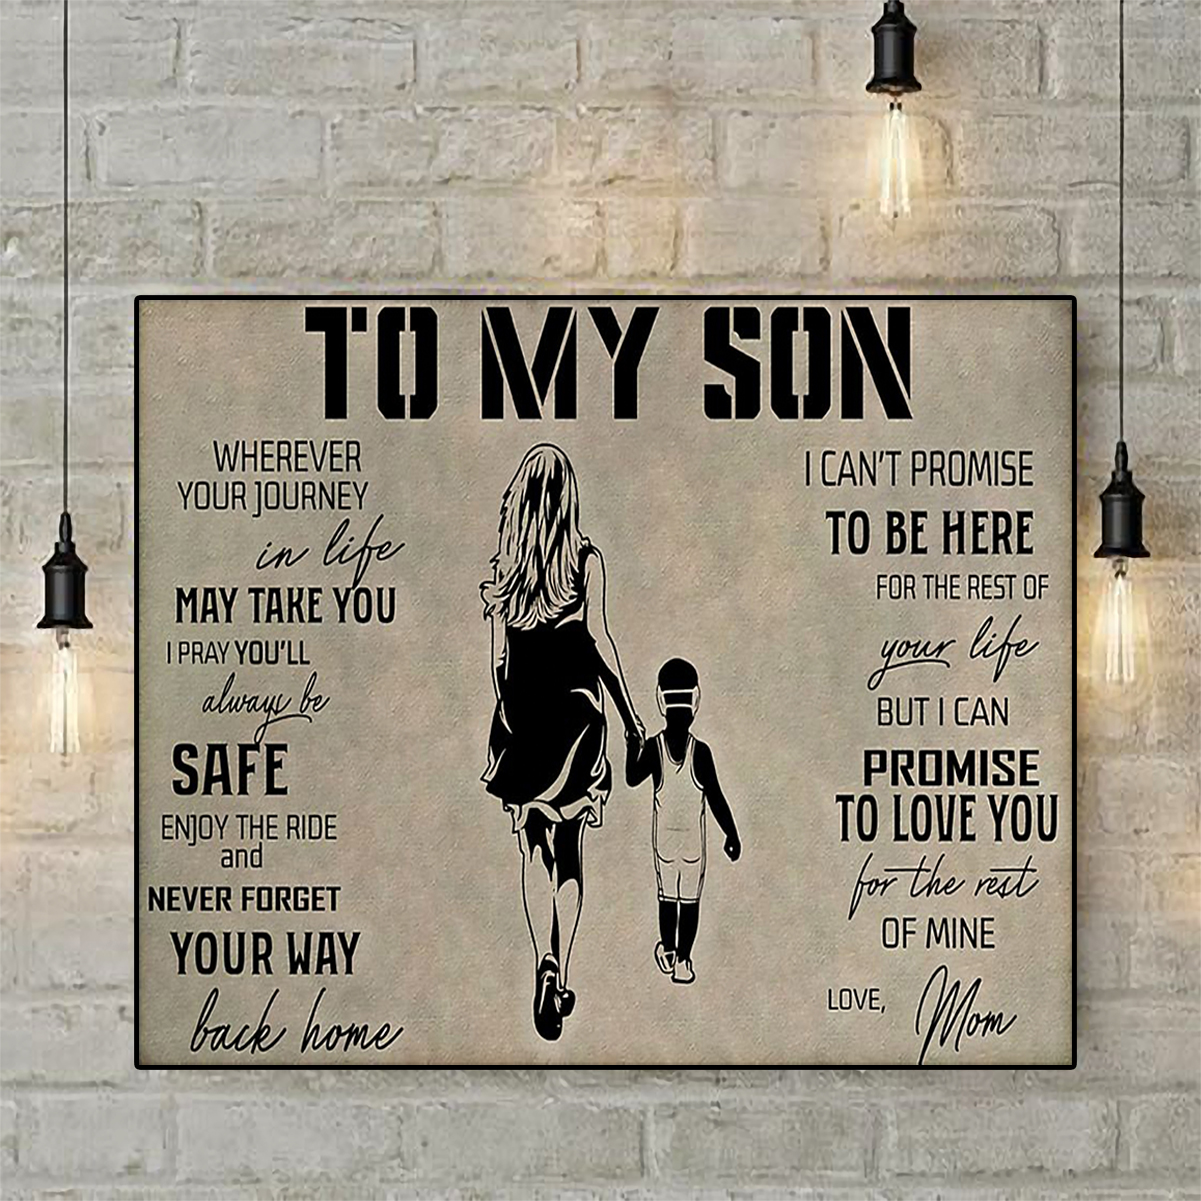 Wrestling to my son love mom poster A1